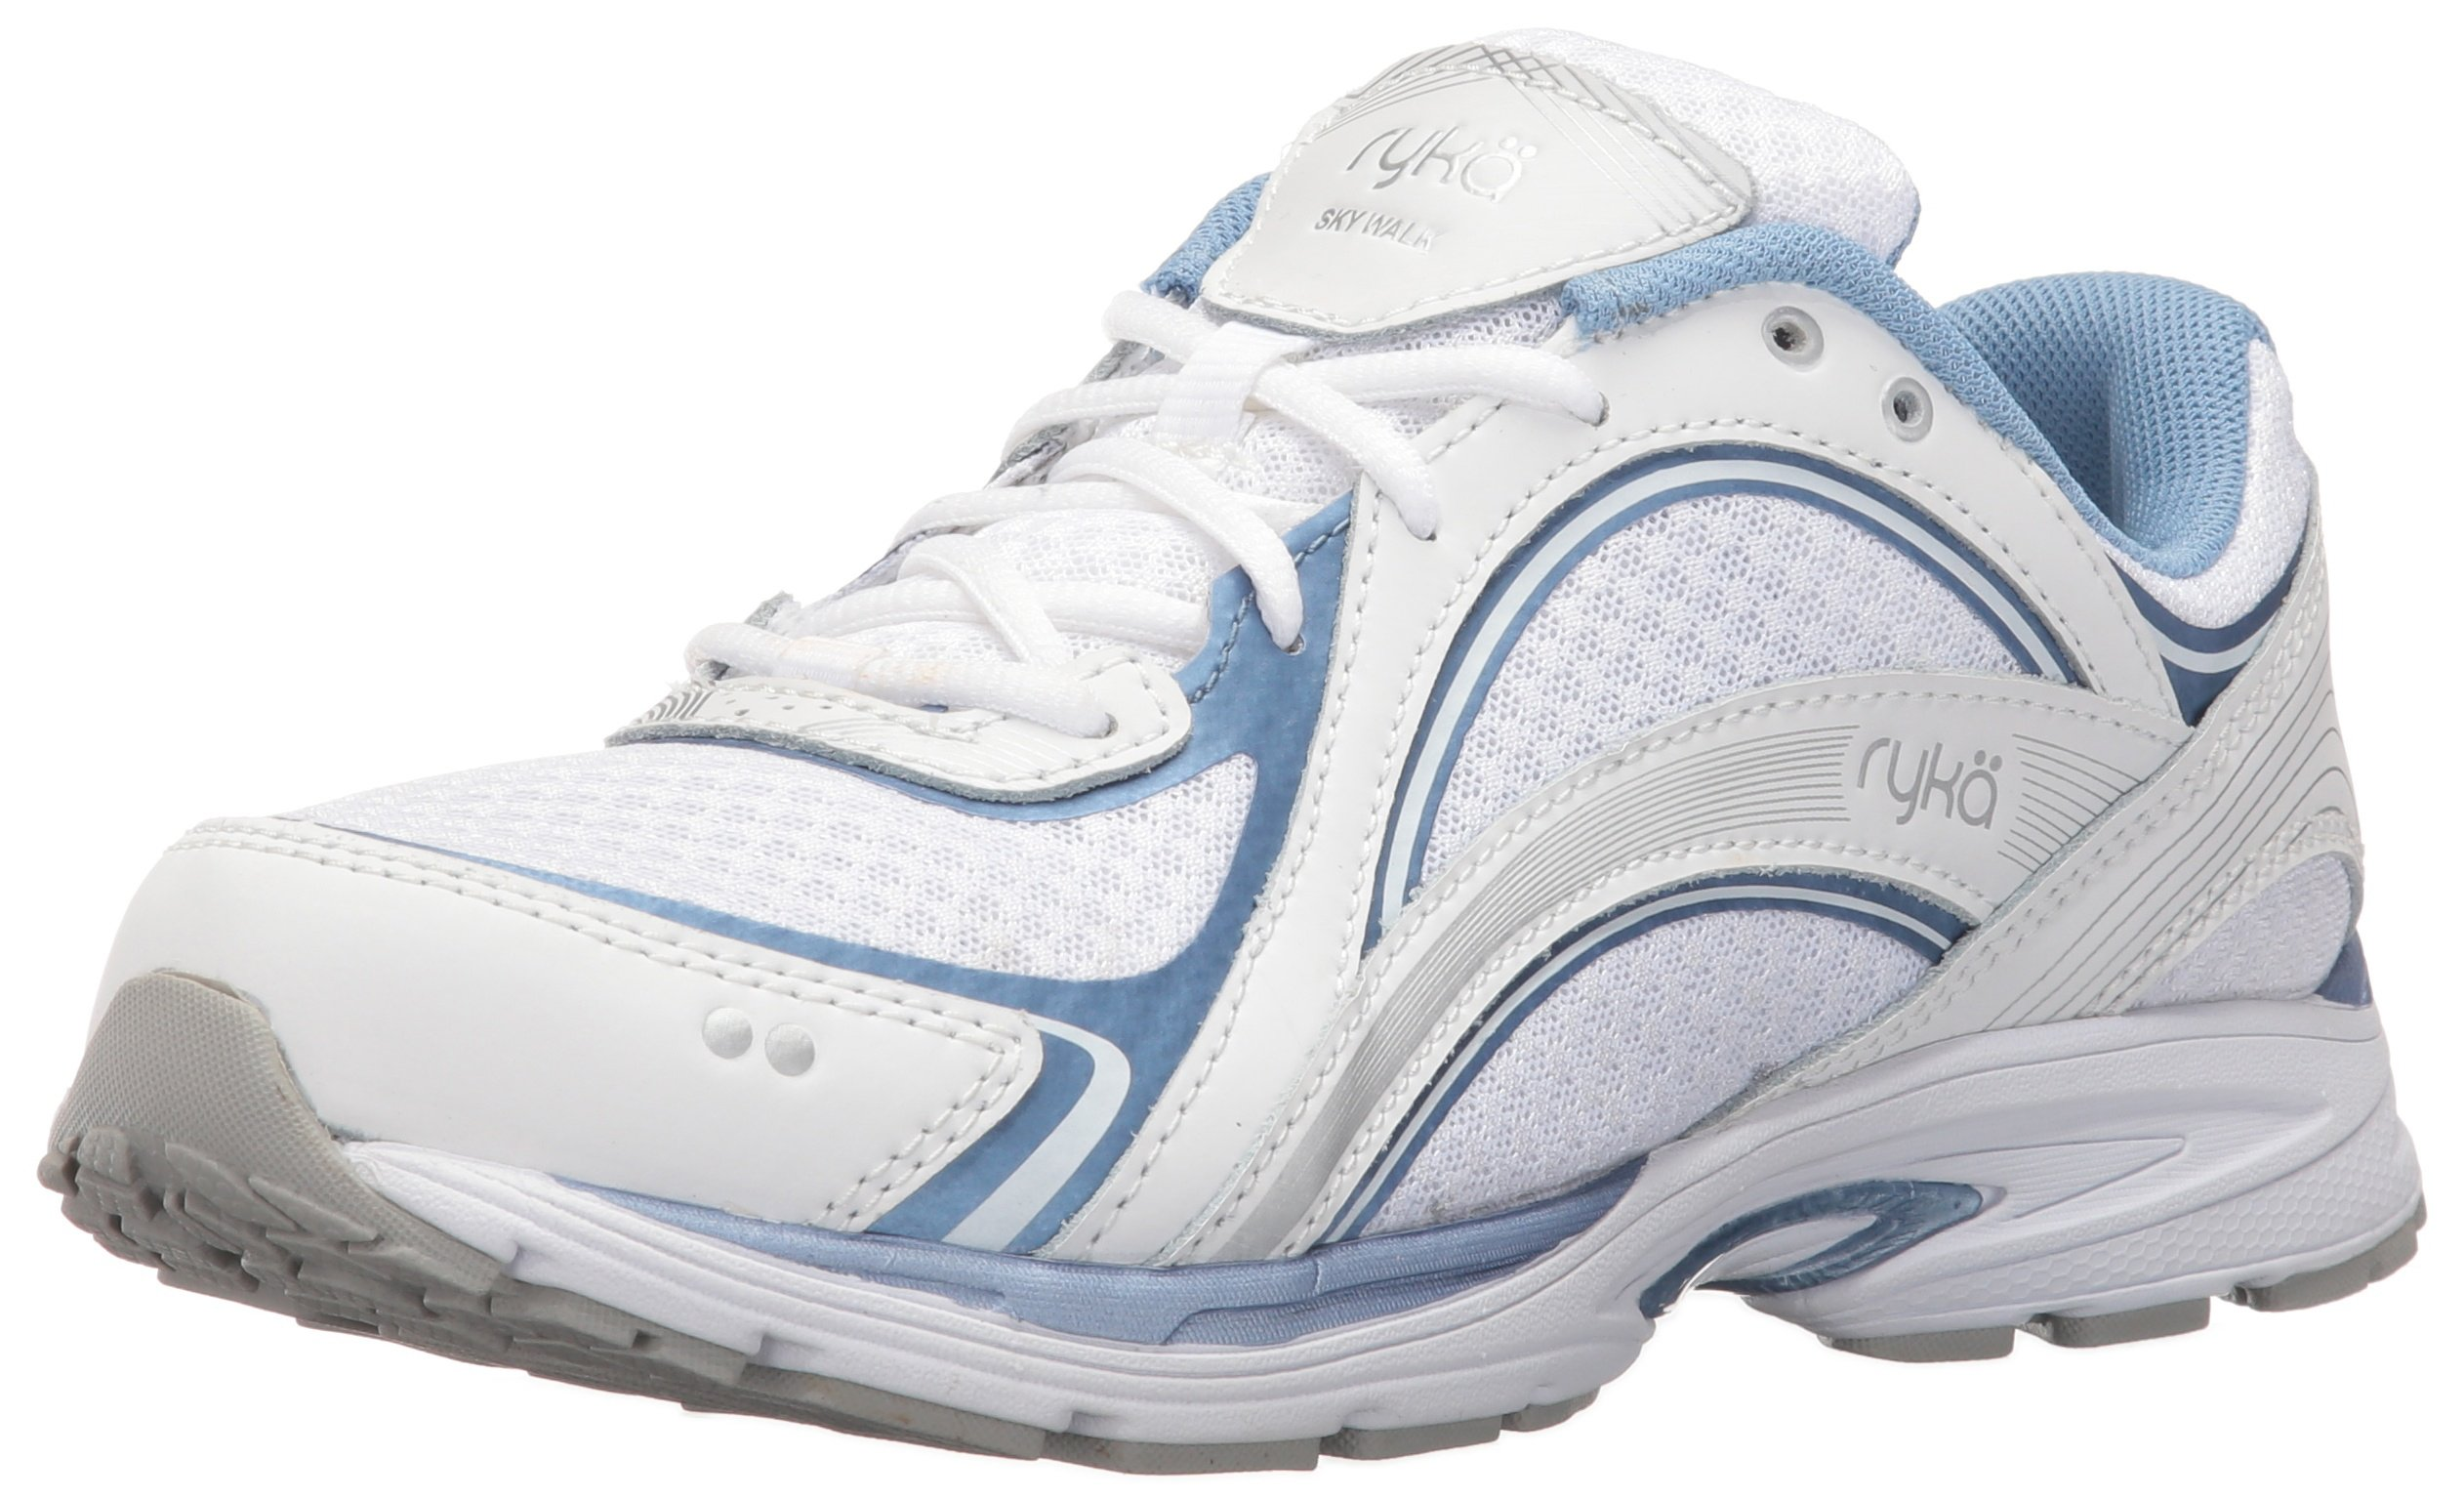 Ryka Women's Sky Walking Shoe, White/Blue, 8 W US